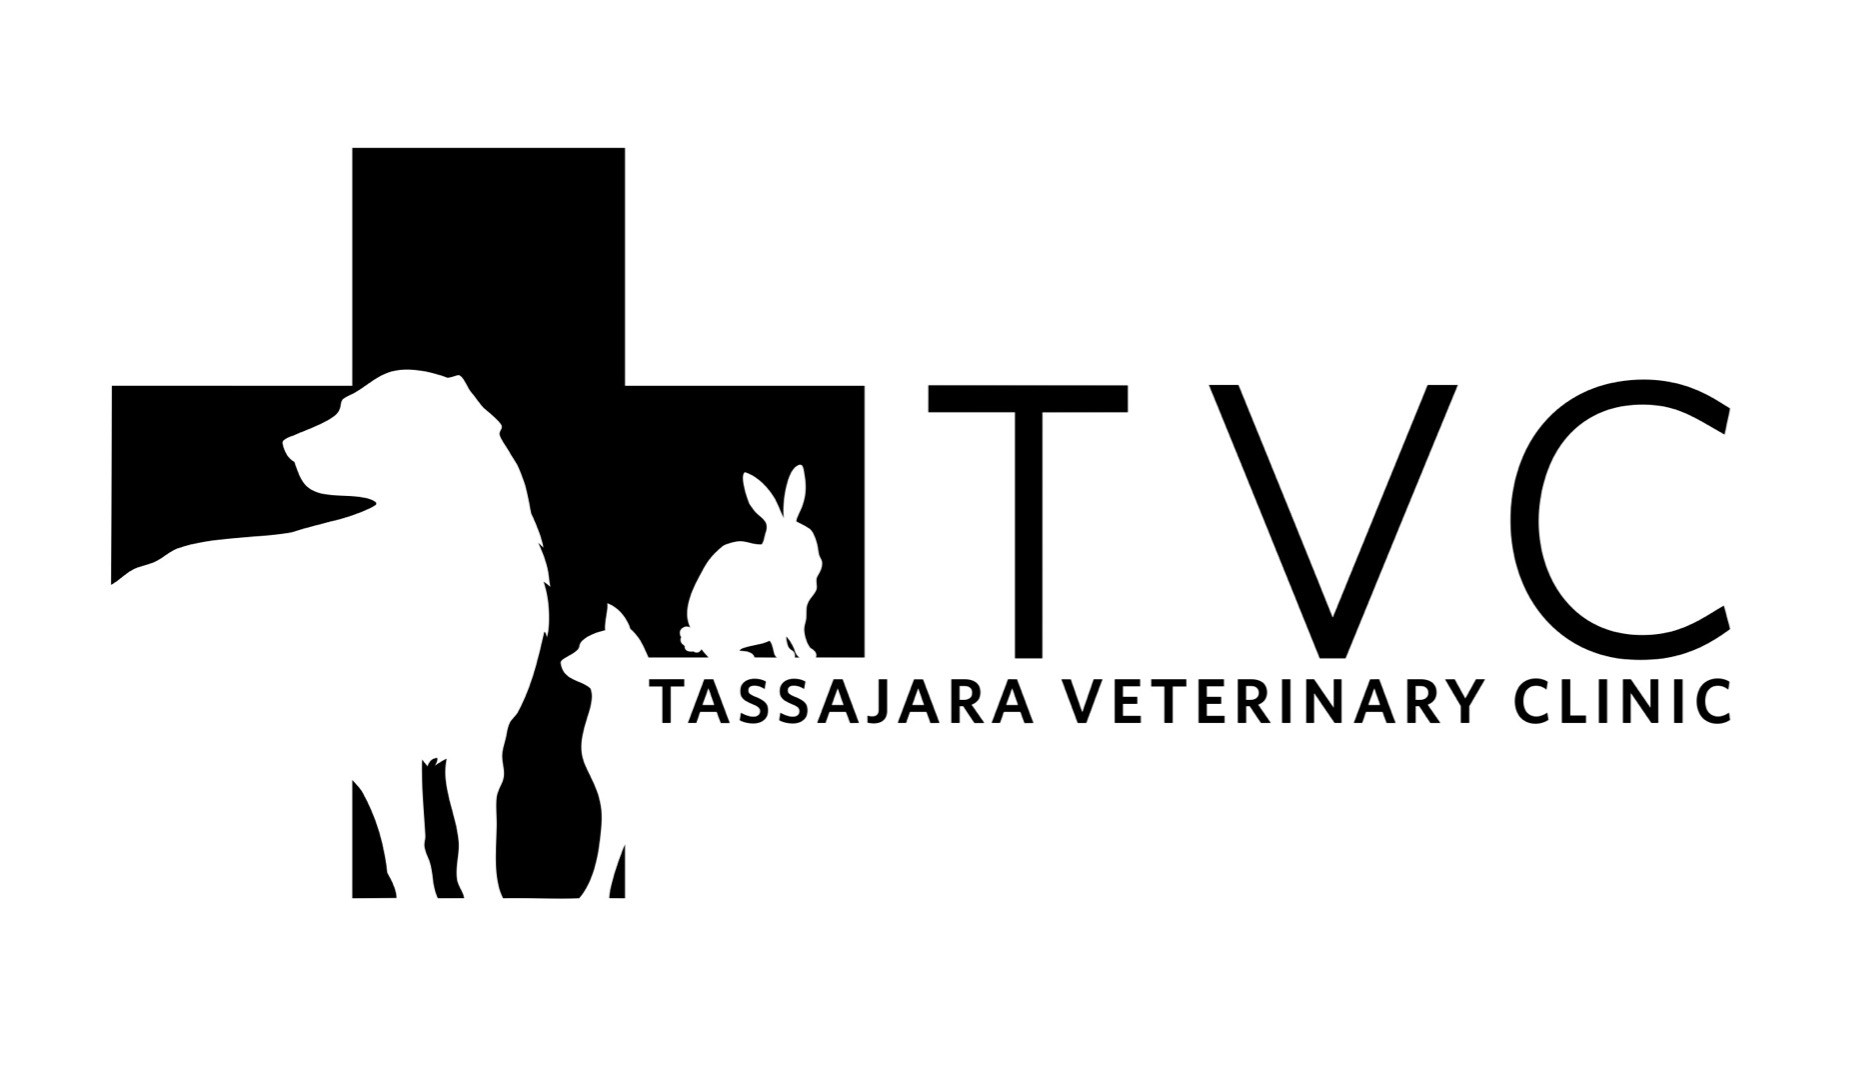 Tassajara Veterinary Clinic